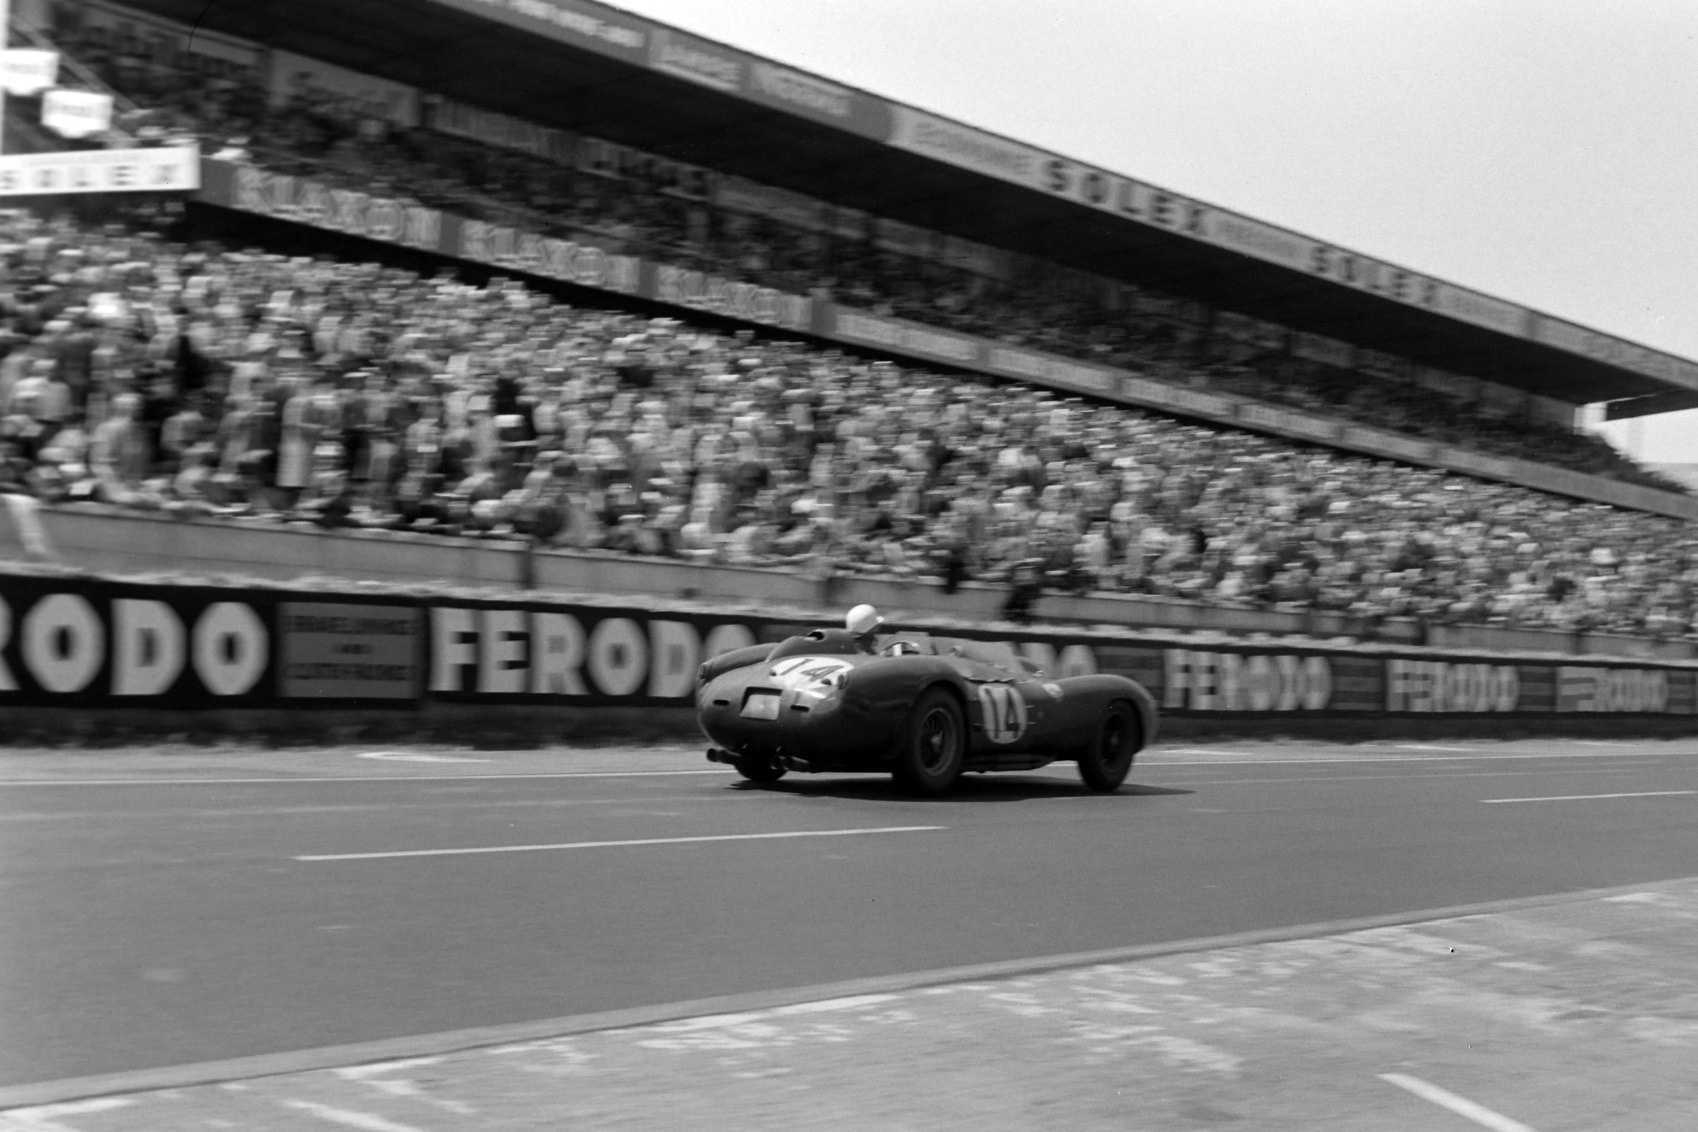 Pictured here in 1958, Gendebien won four times in a Ferrari and was the most successful driver of his era